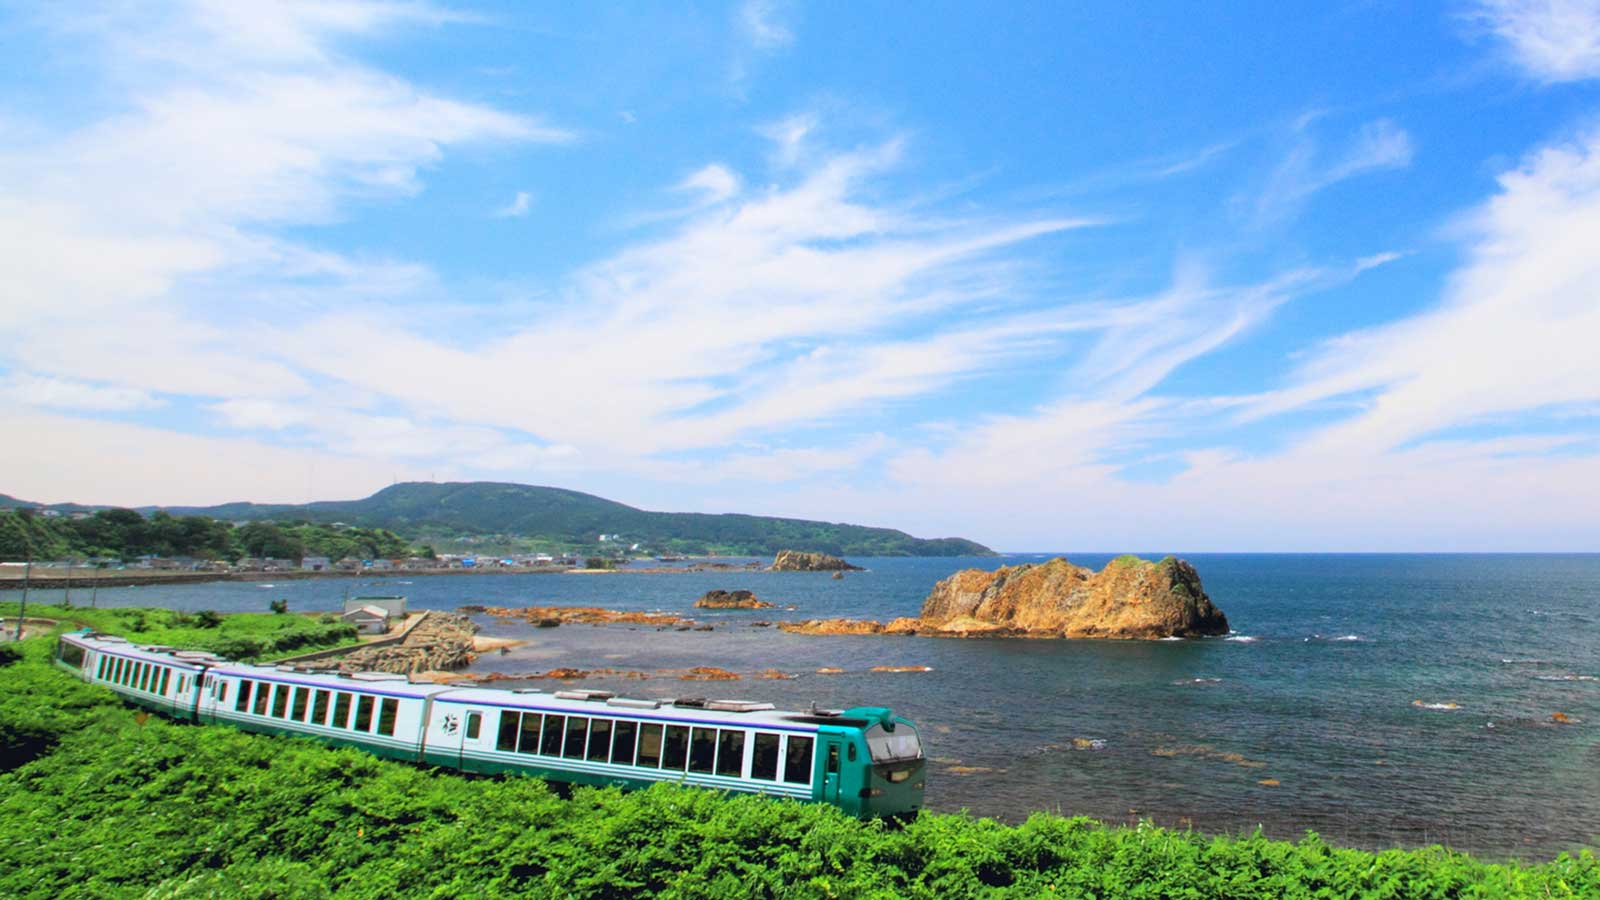 10 must-ride local railroads that will take you across scenic Japan